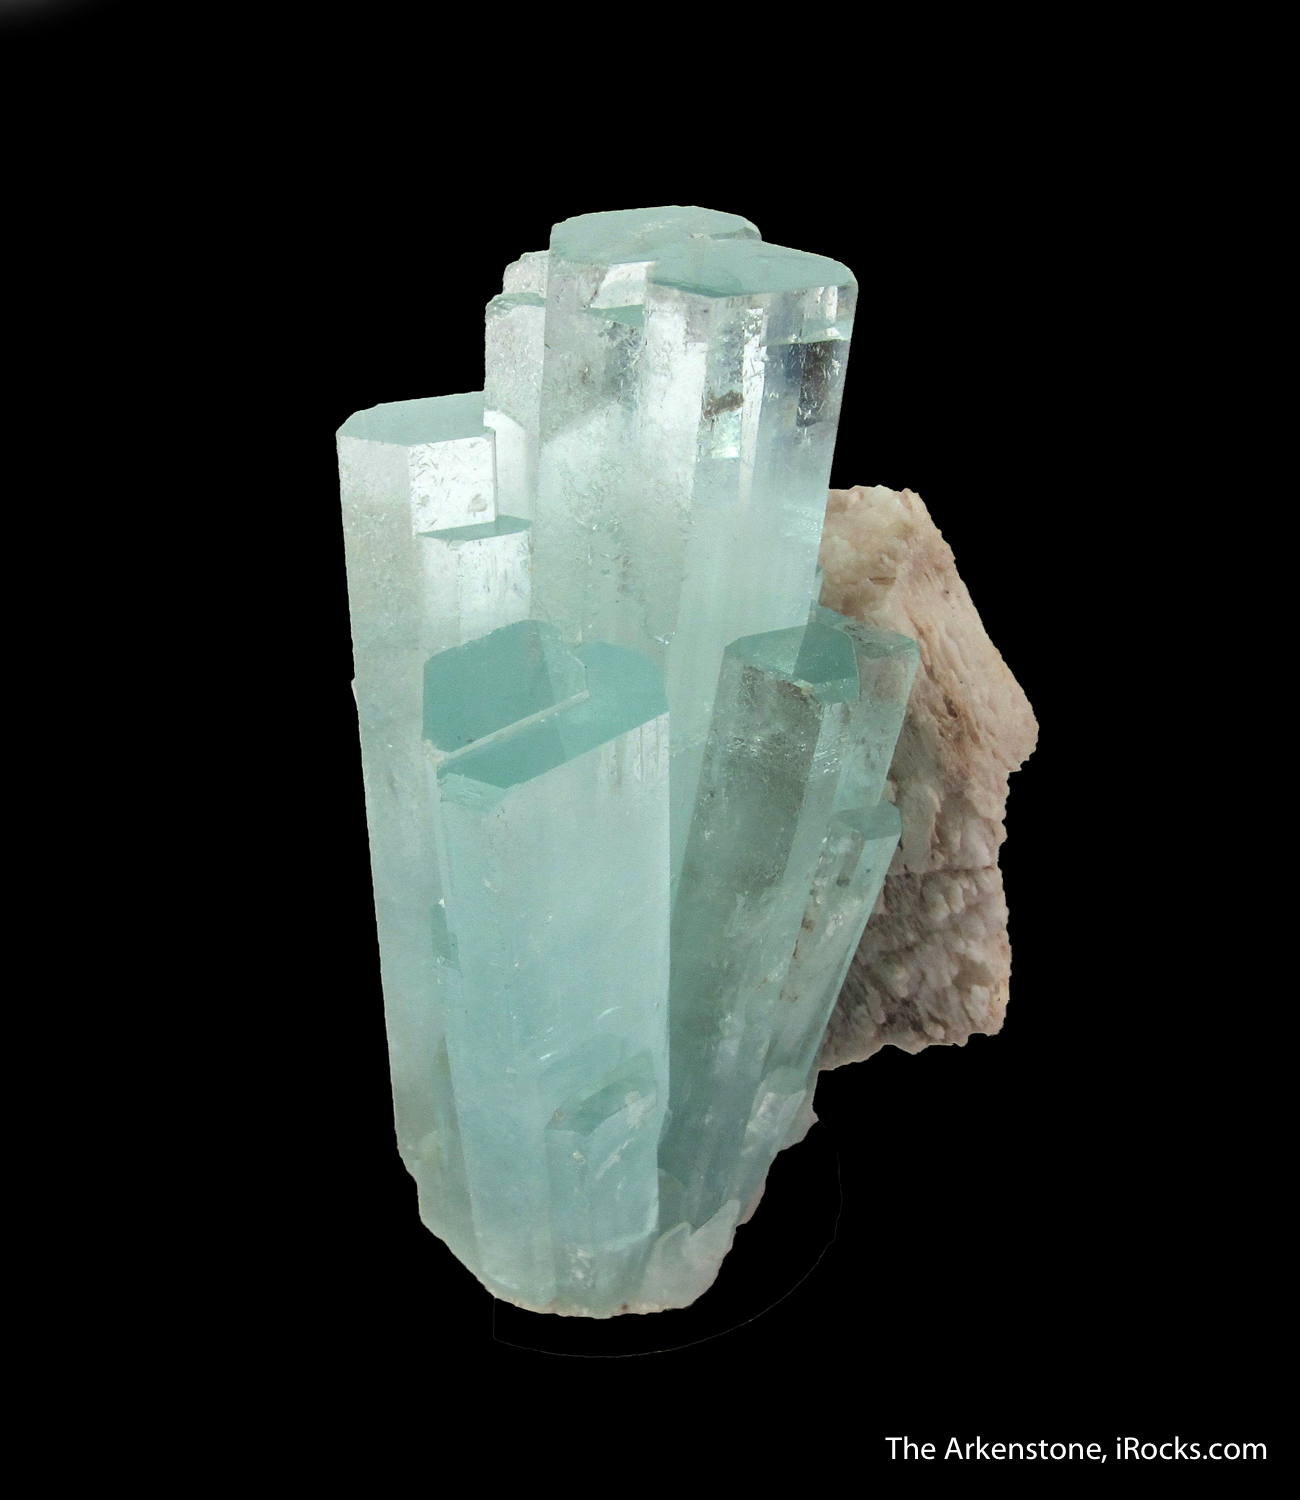 Lovely spray translucent gemmy Aquas perched beautifully Feldspar